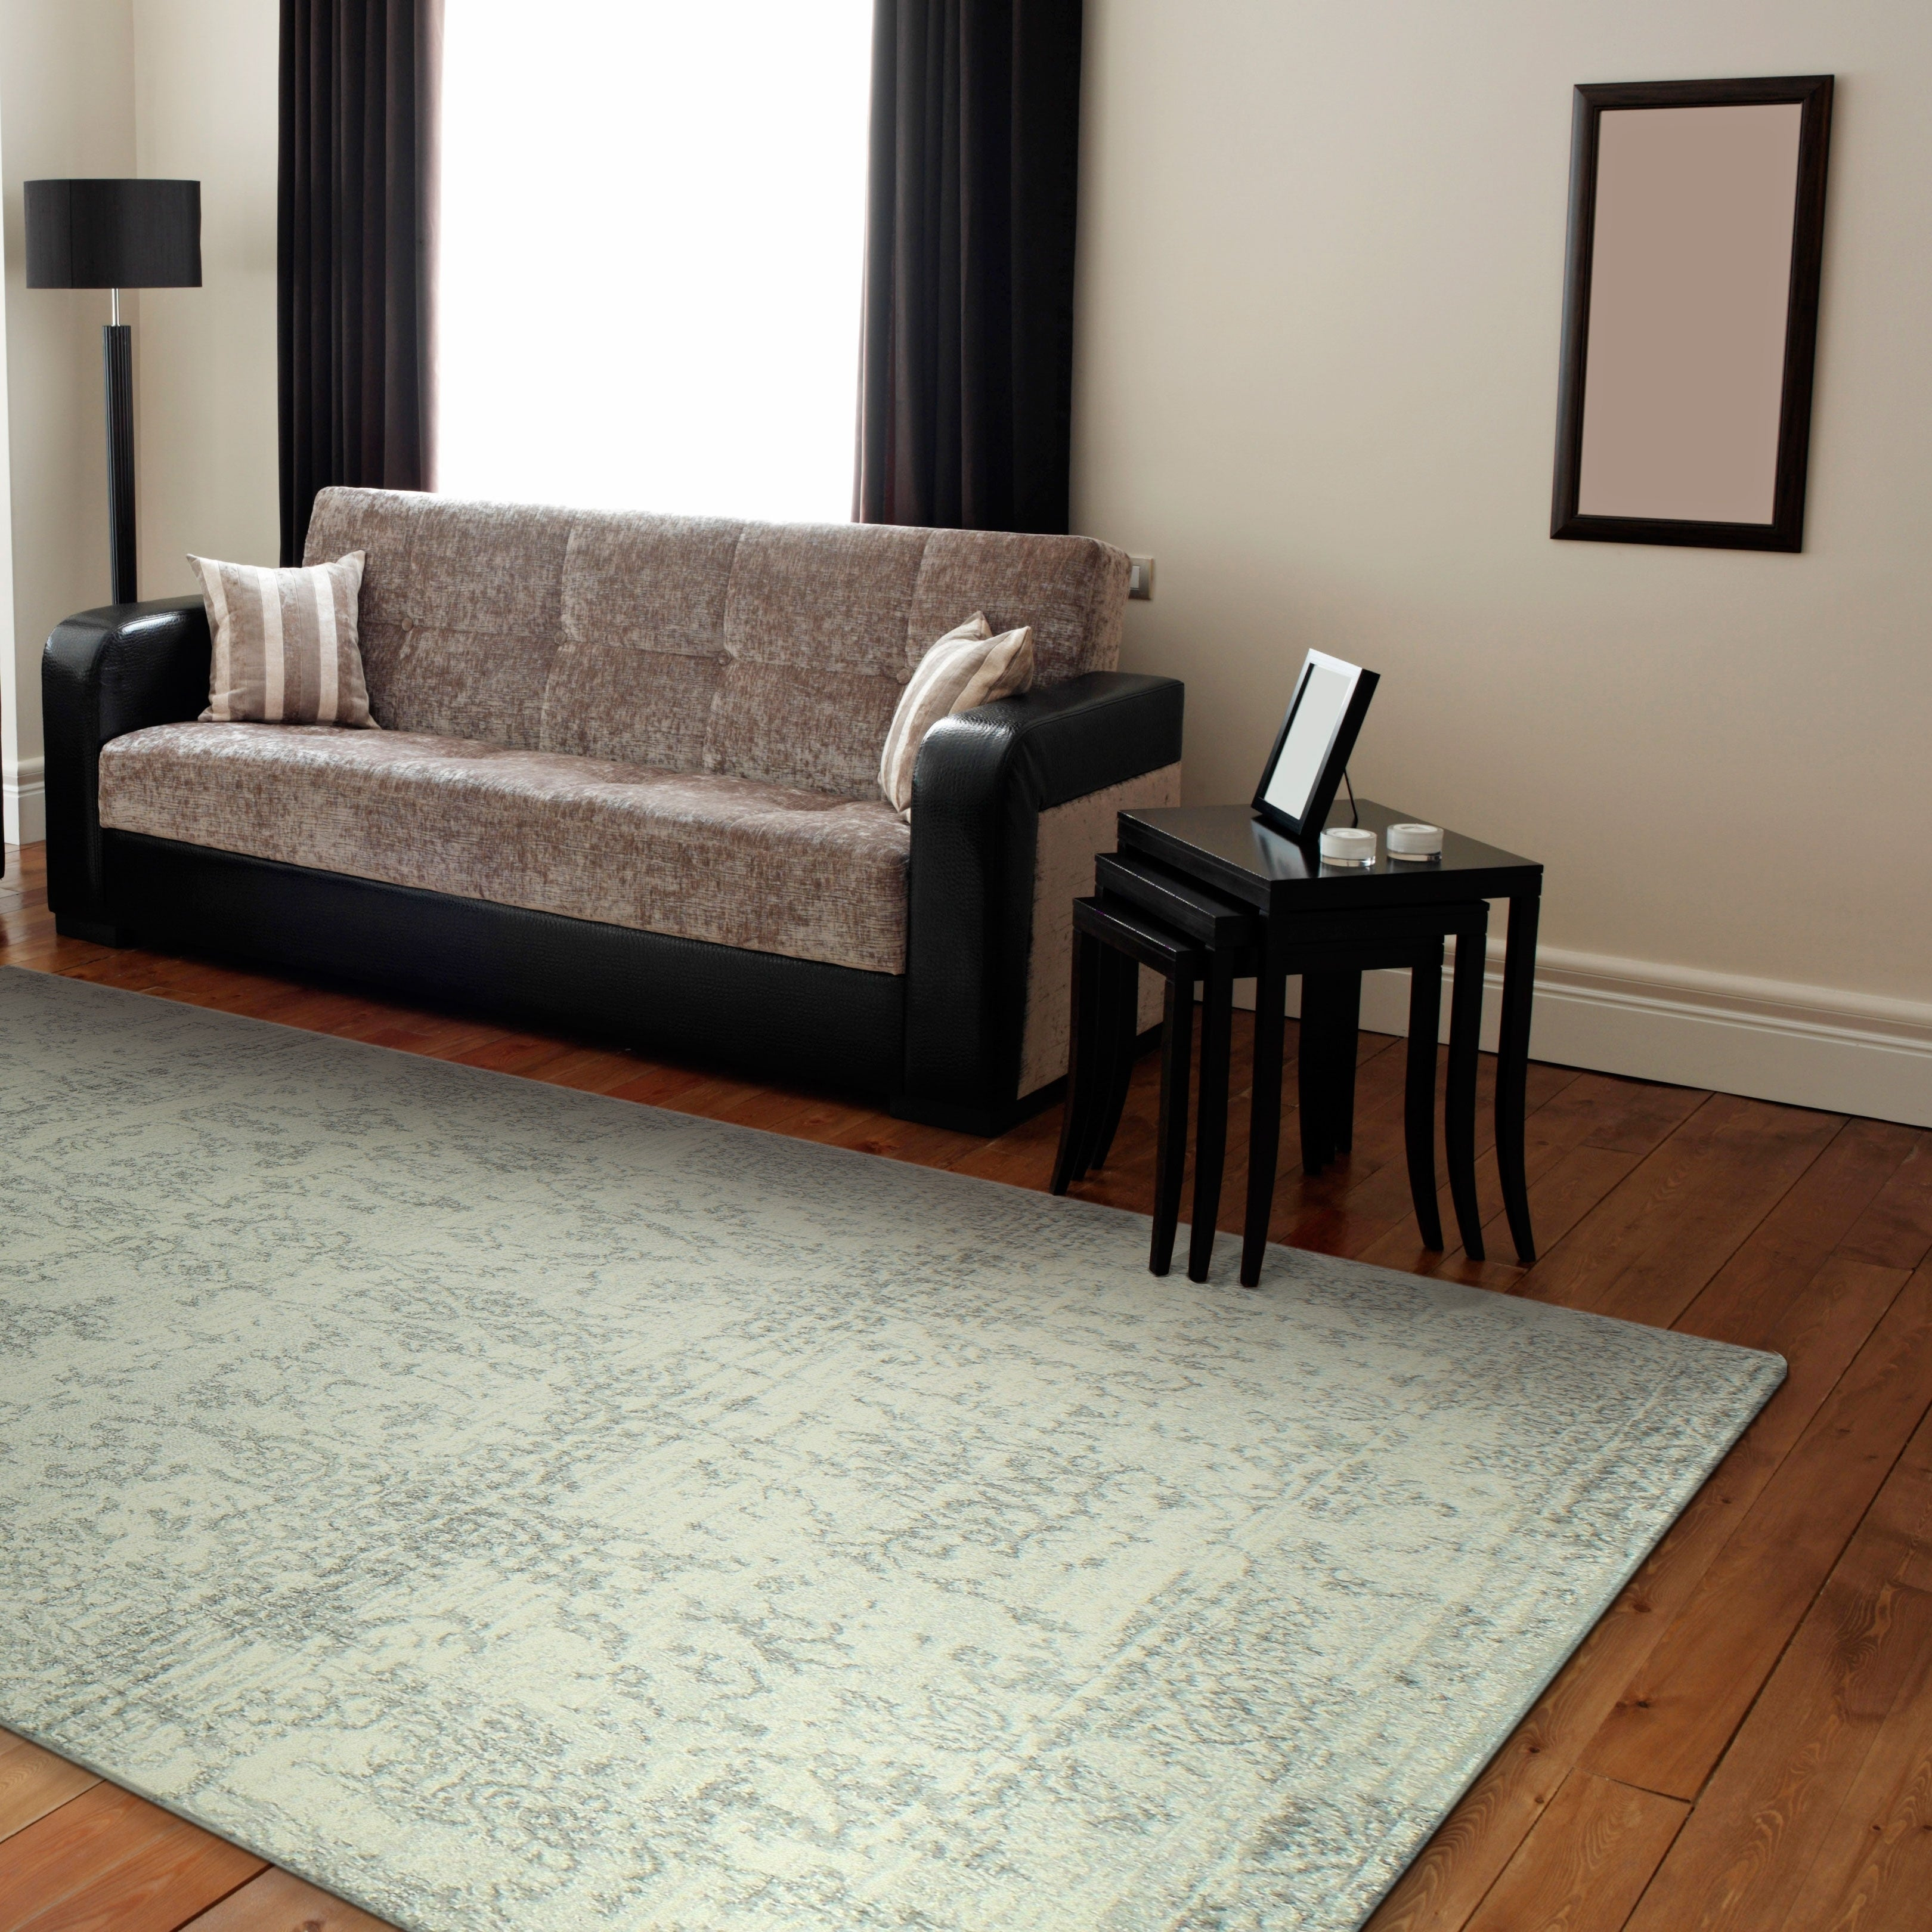 Aurora Ivory/Silver Transitional  Area Rug - 5 x 76 (5 x 76 - Ivory/Silver)